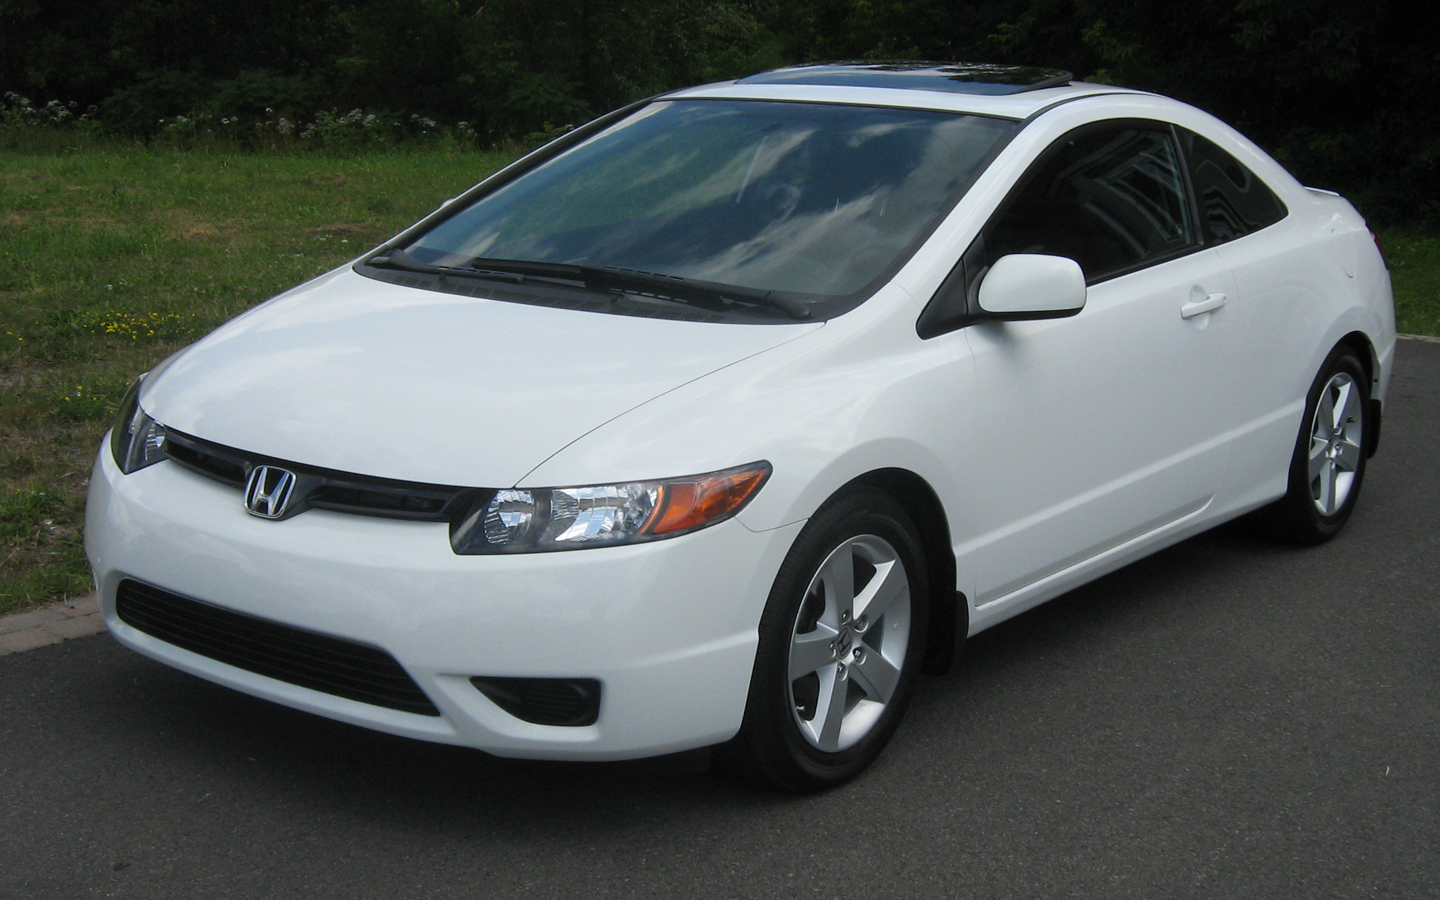 2008 Honda Civic Coupe LX picture